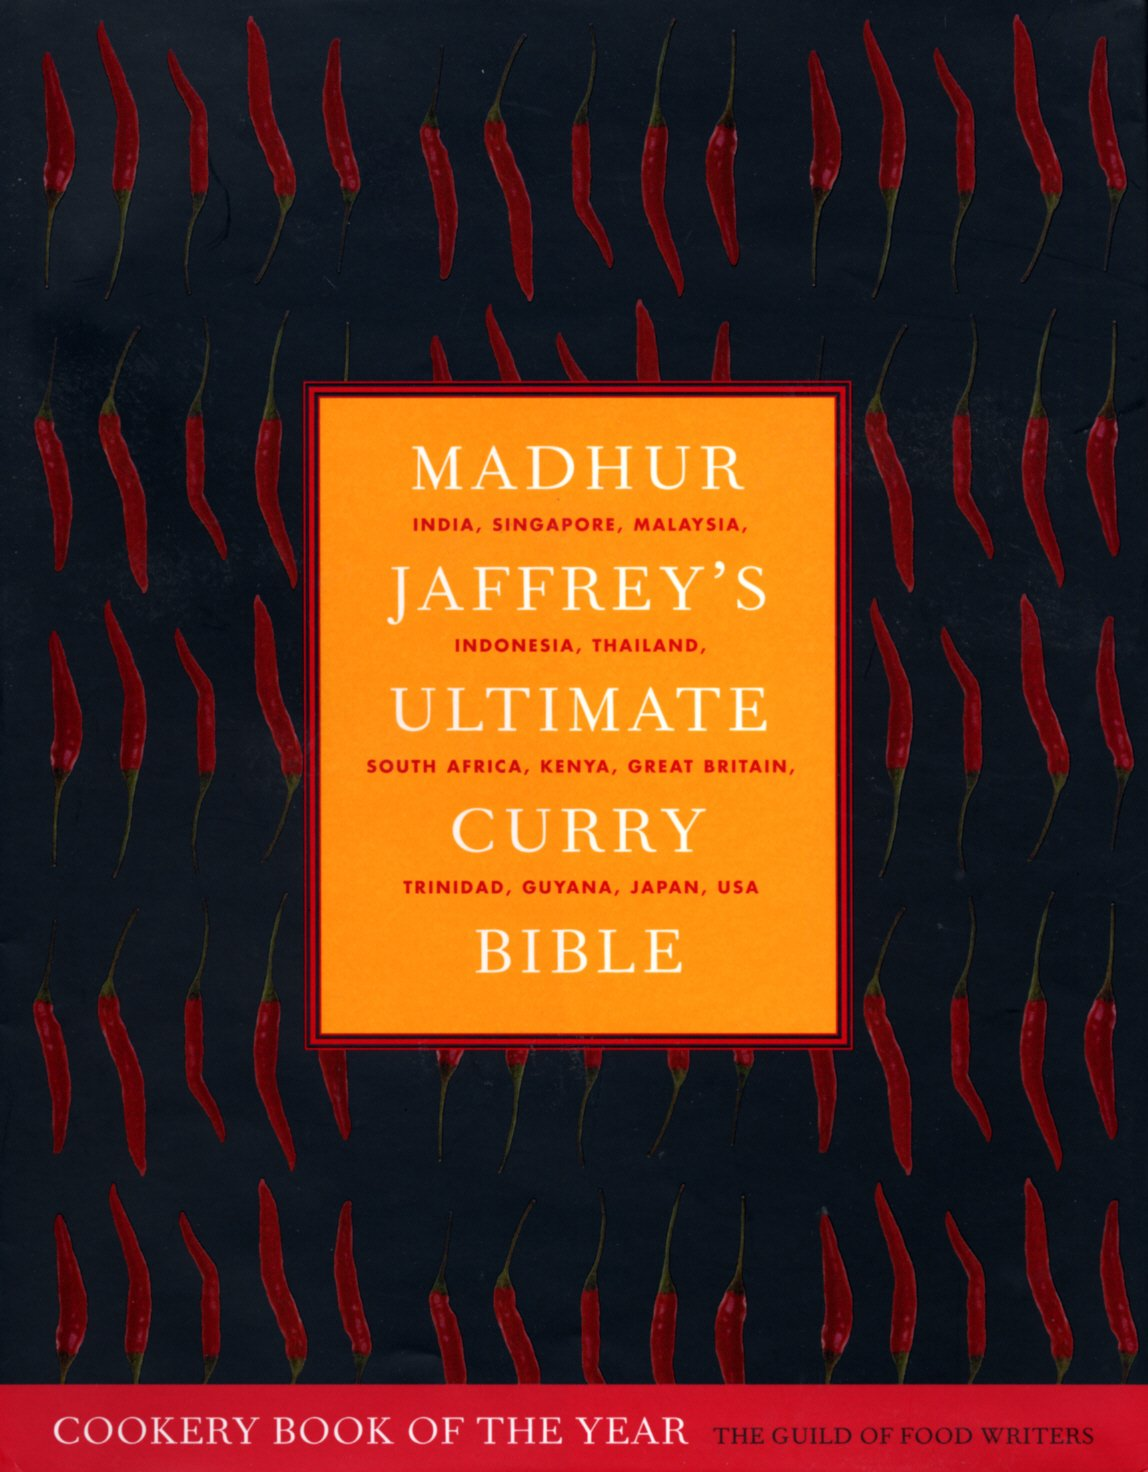 Madhur Jaffrey's Ultimate Curry Bible 1